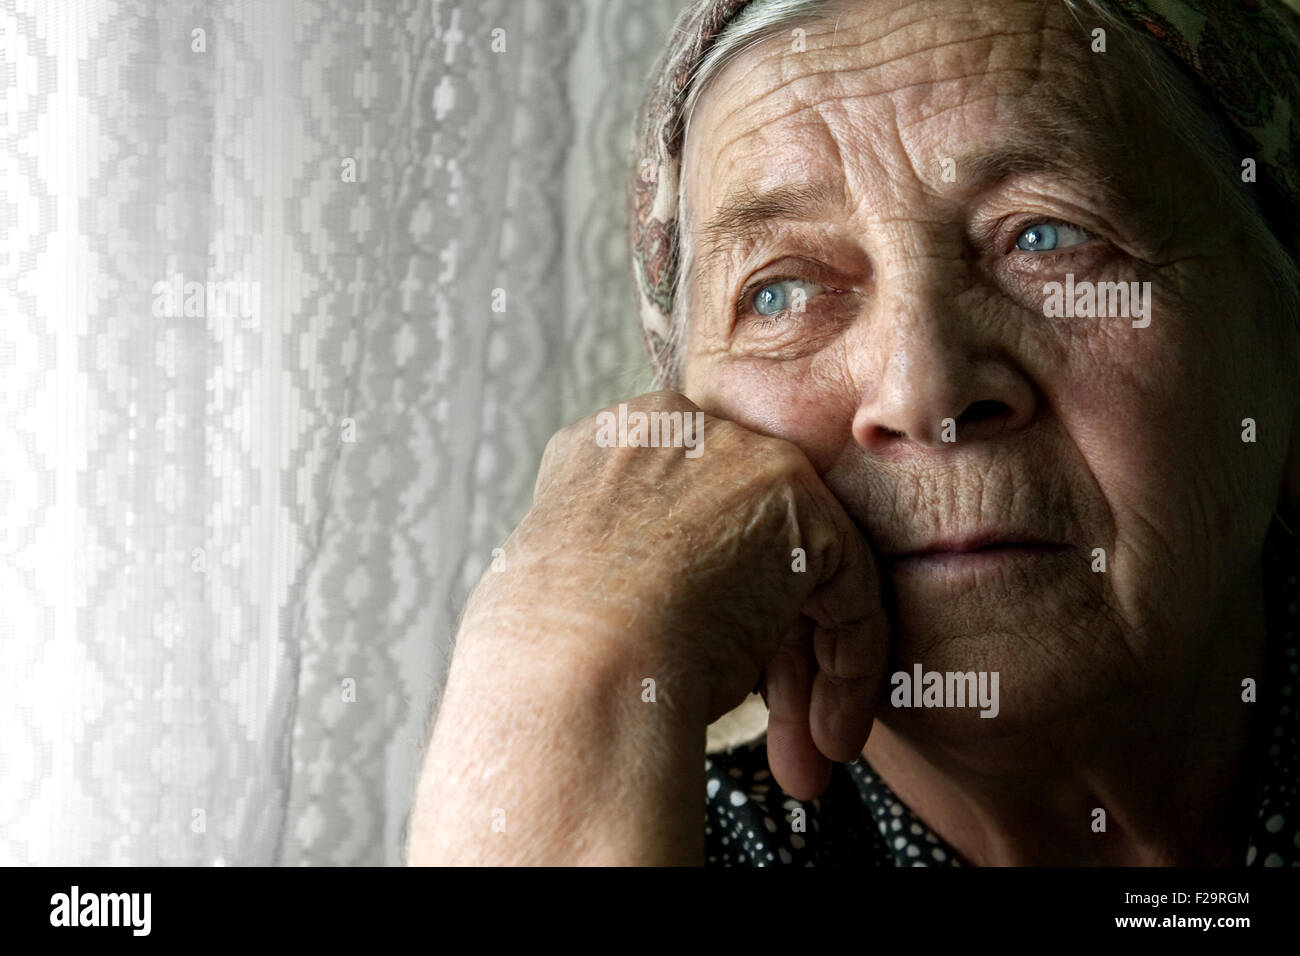 Elder senior woman with sad face suffering from depression - Stock Image